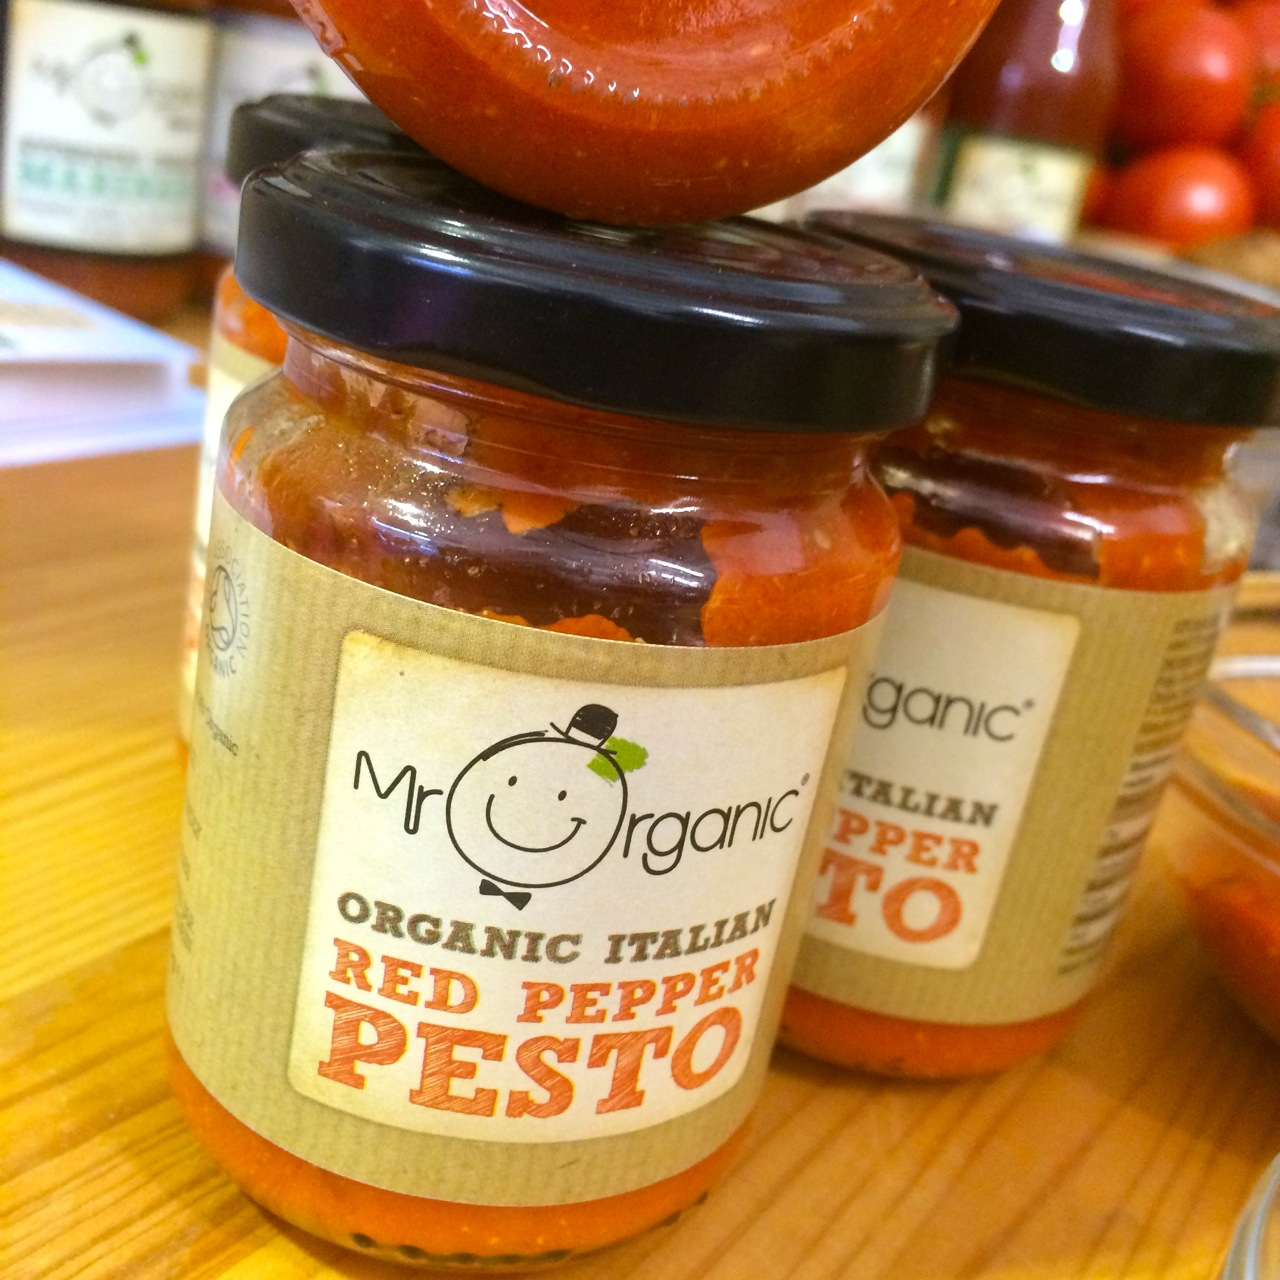 https://i0.wp.com/fatgayvegan.com/wp-content/uploads/2015/09/mr-organic-red-pepper-pesto.jpg?fit=1280%2C1280